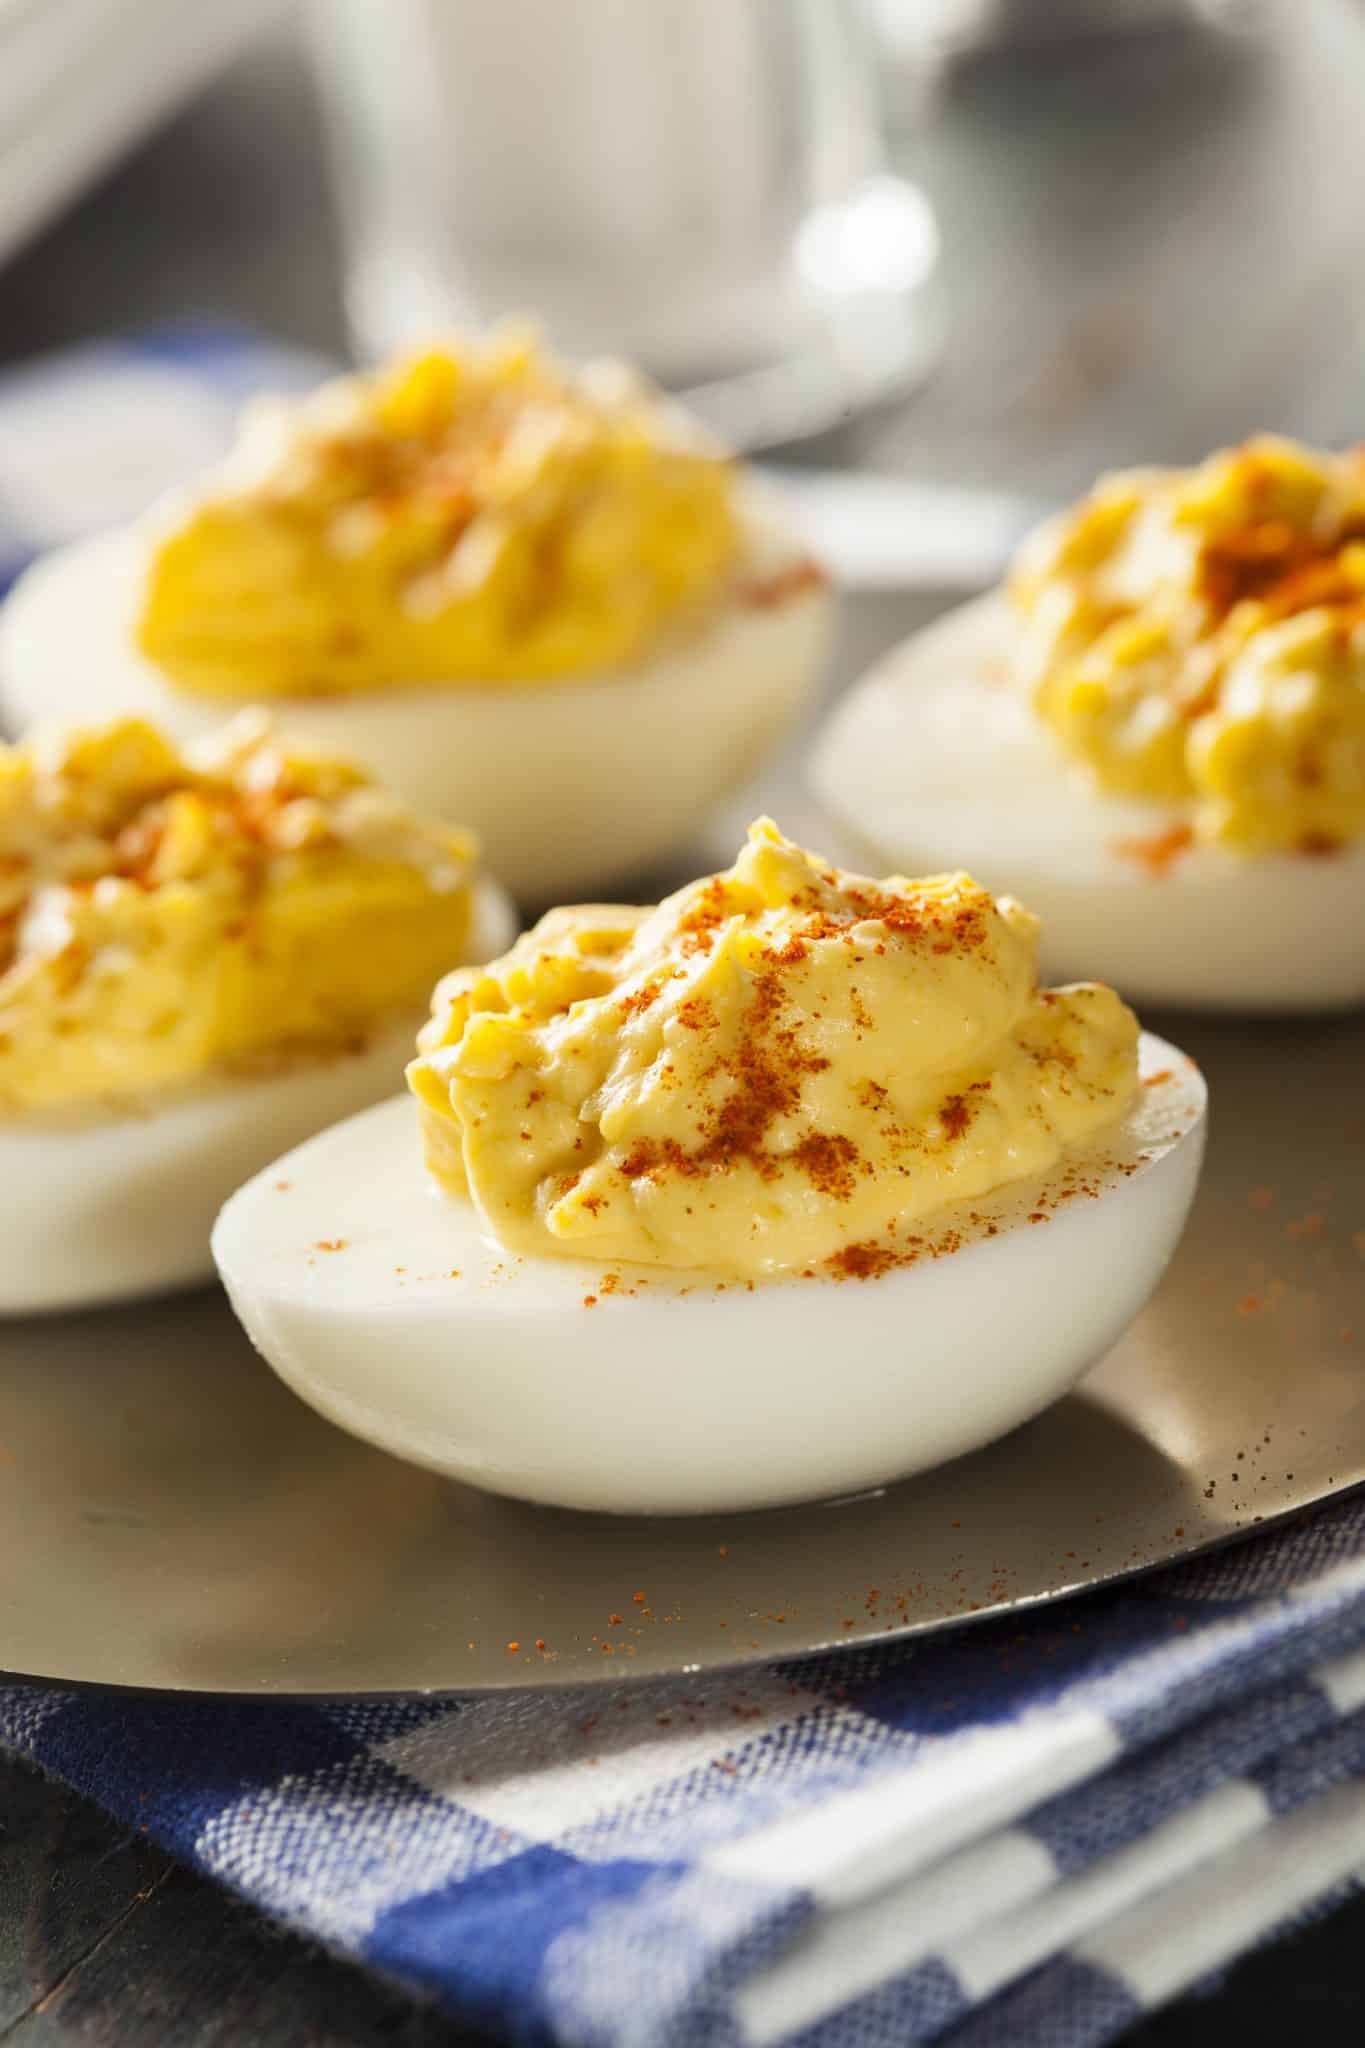 eggs stuffed deviled recipe basic ever cook devilled egg recipes country classic cooking bigoven